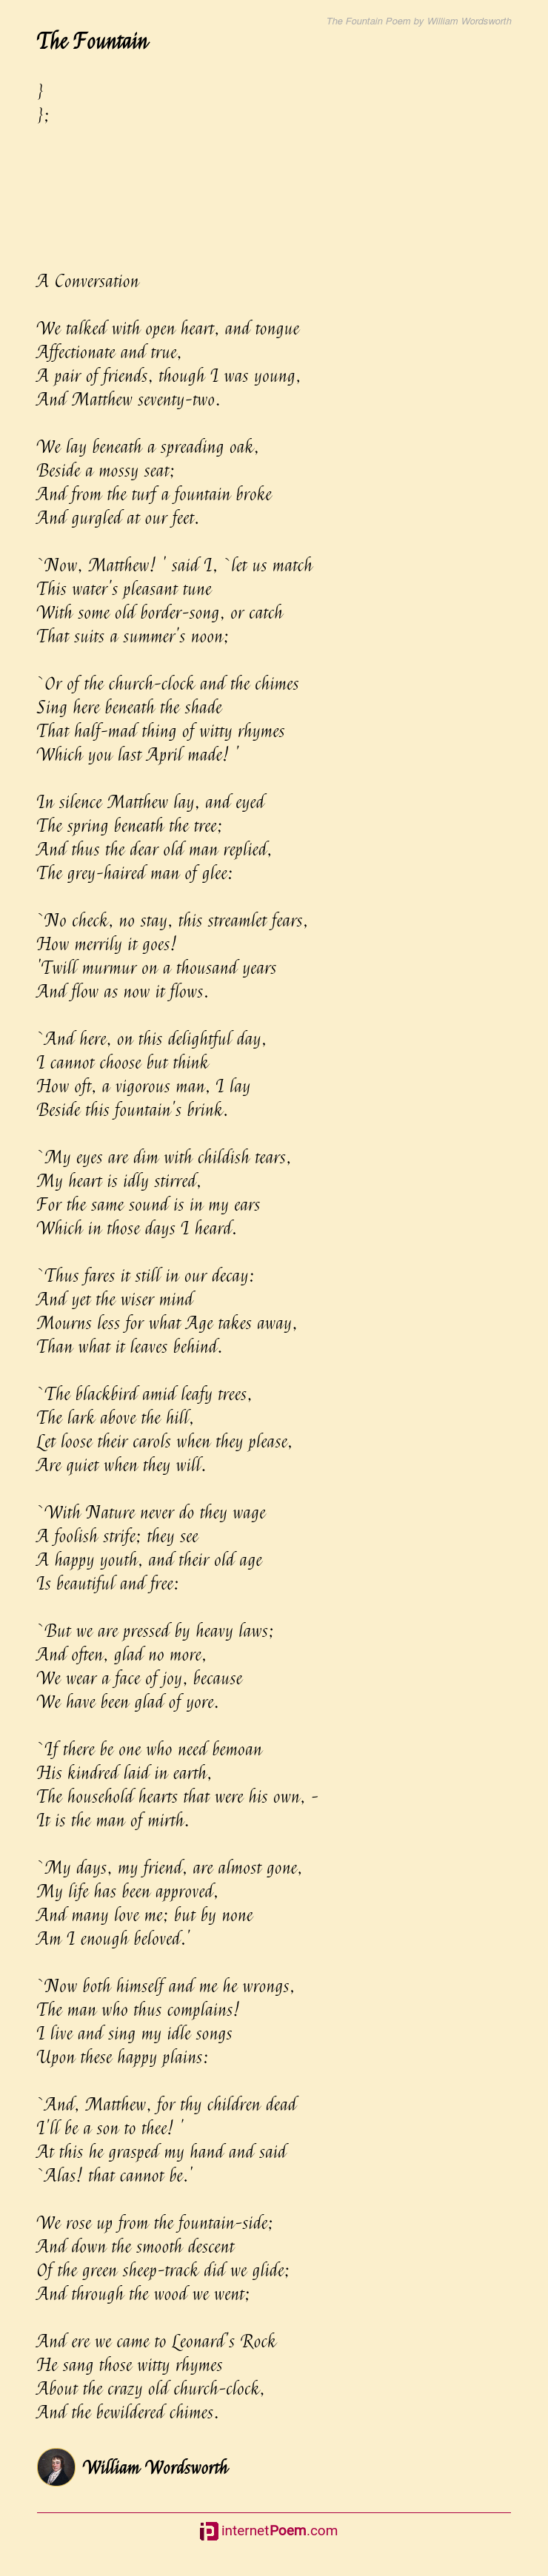 The Fountain Poem By William Wordsworth